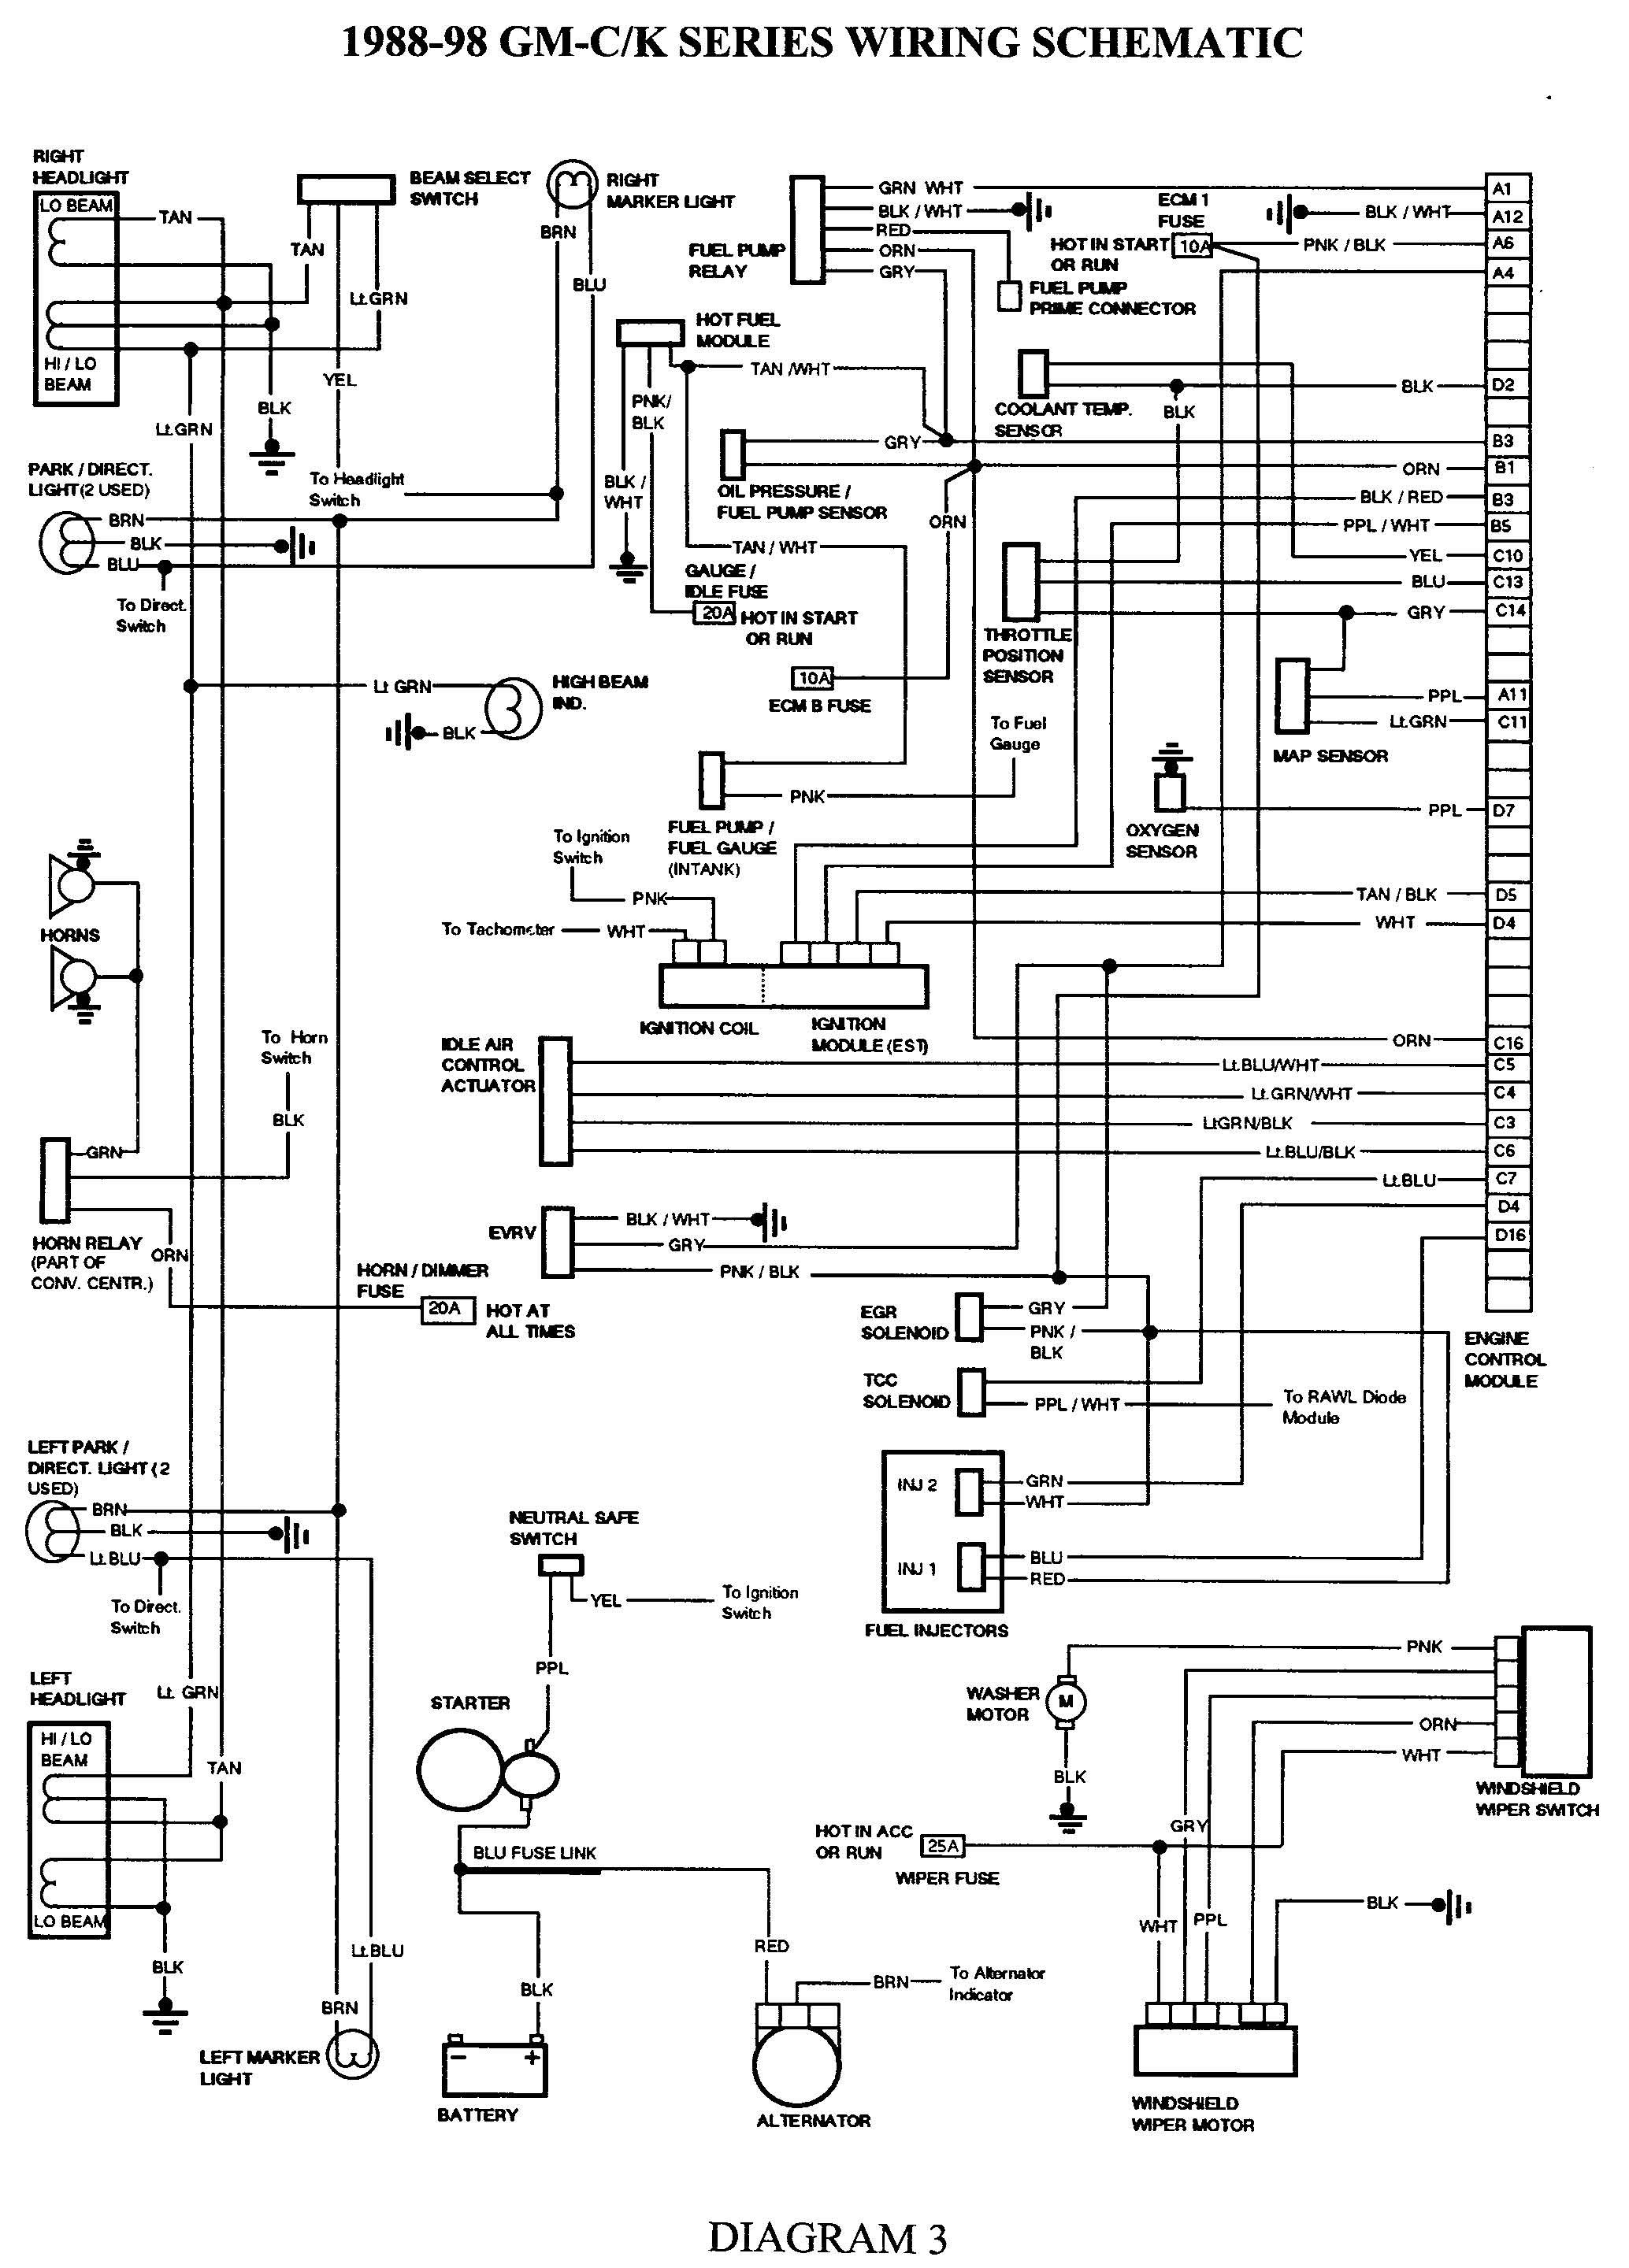 wiring diagram for 1988 chevy 1500 get free image about wiring rh 16 5 skullbocks de